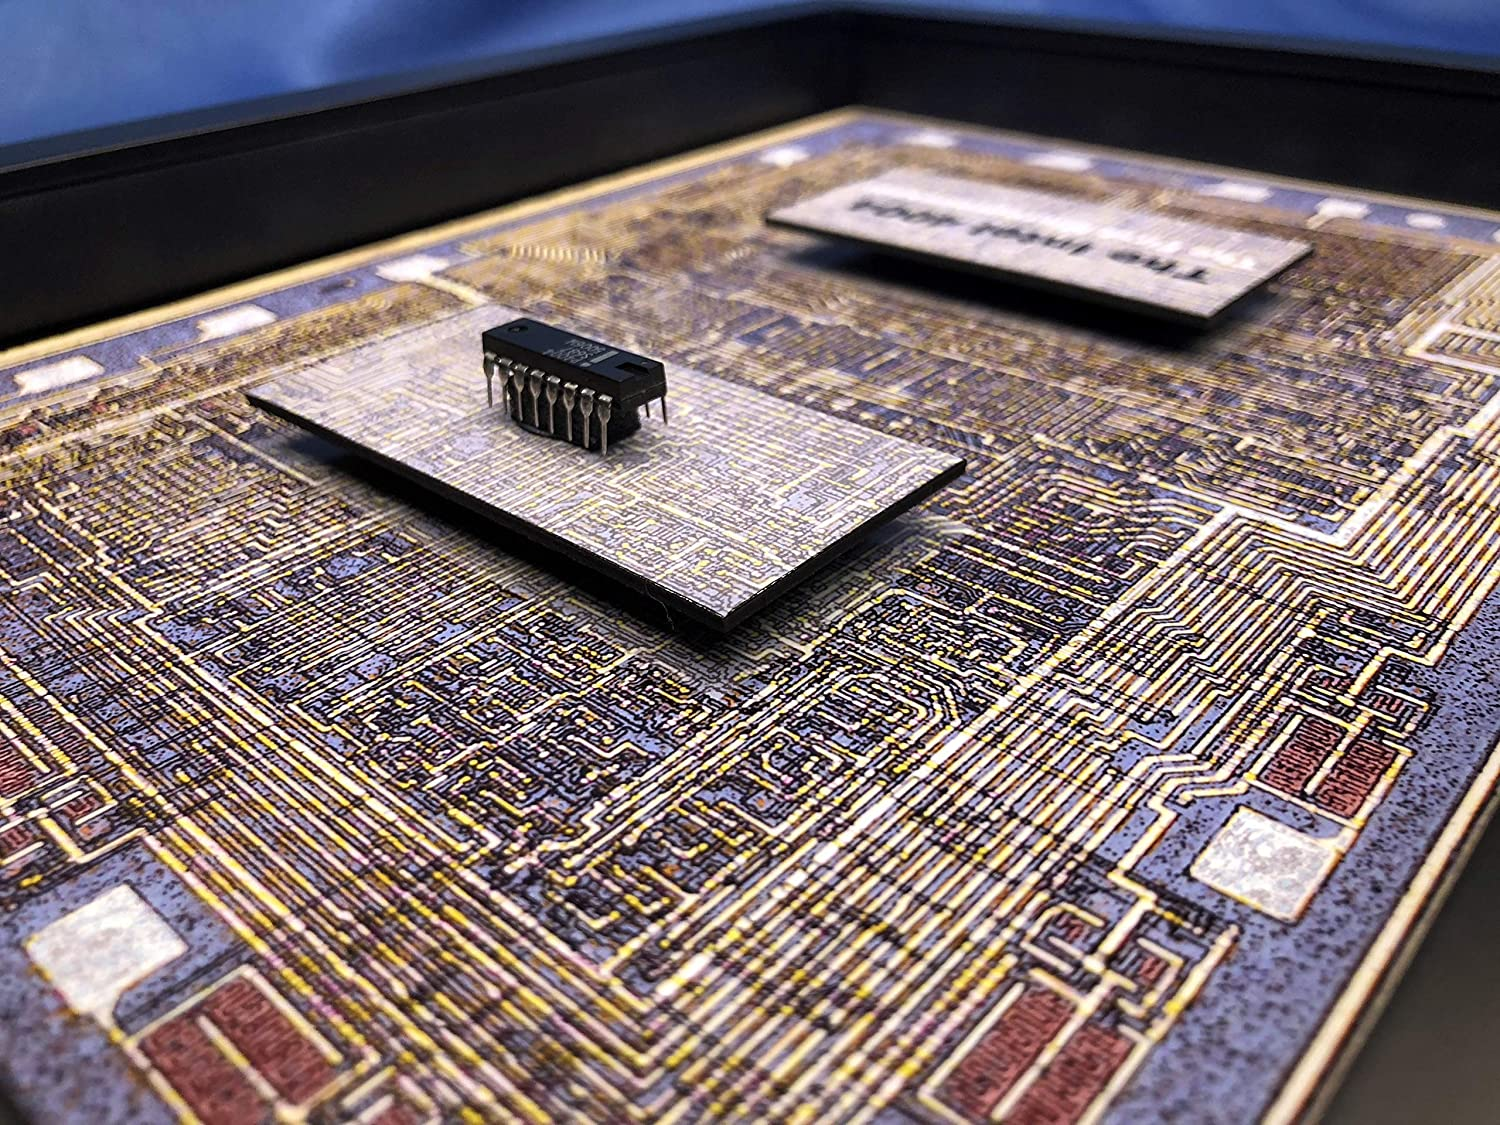 Artwork with real computer chip Making of a Microprocessor ChipScapes Prints